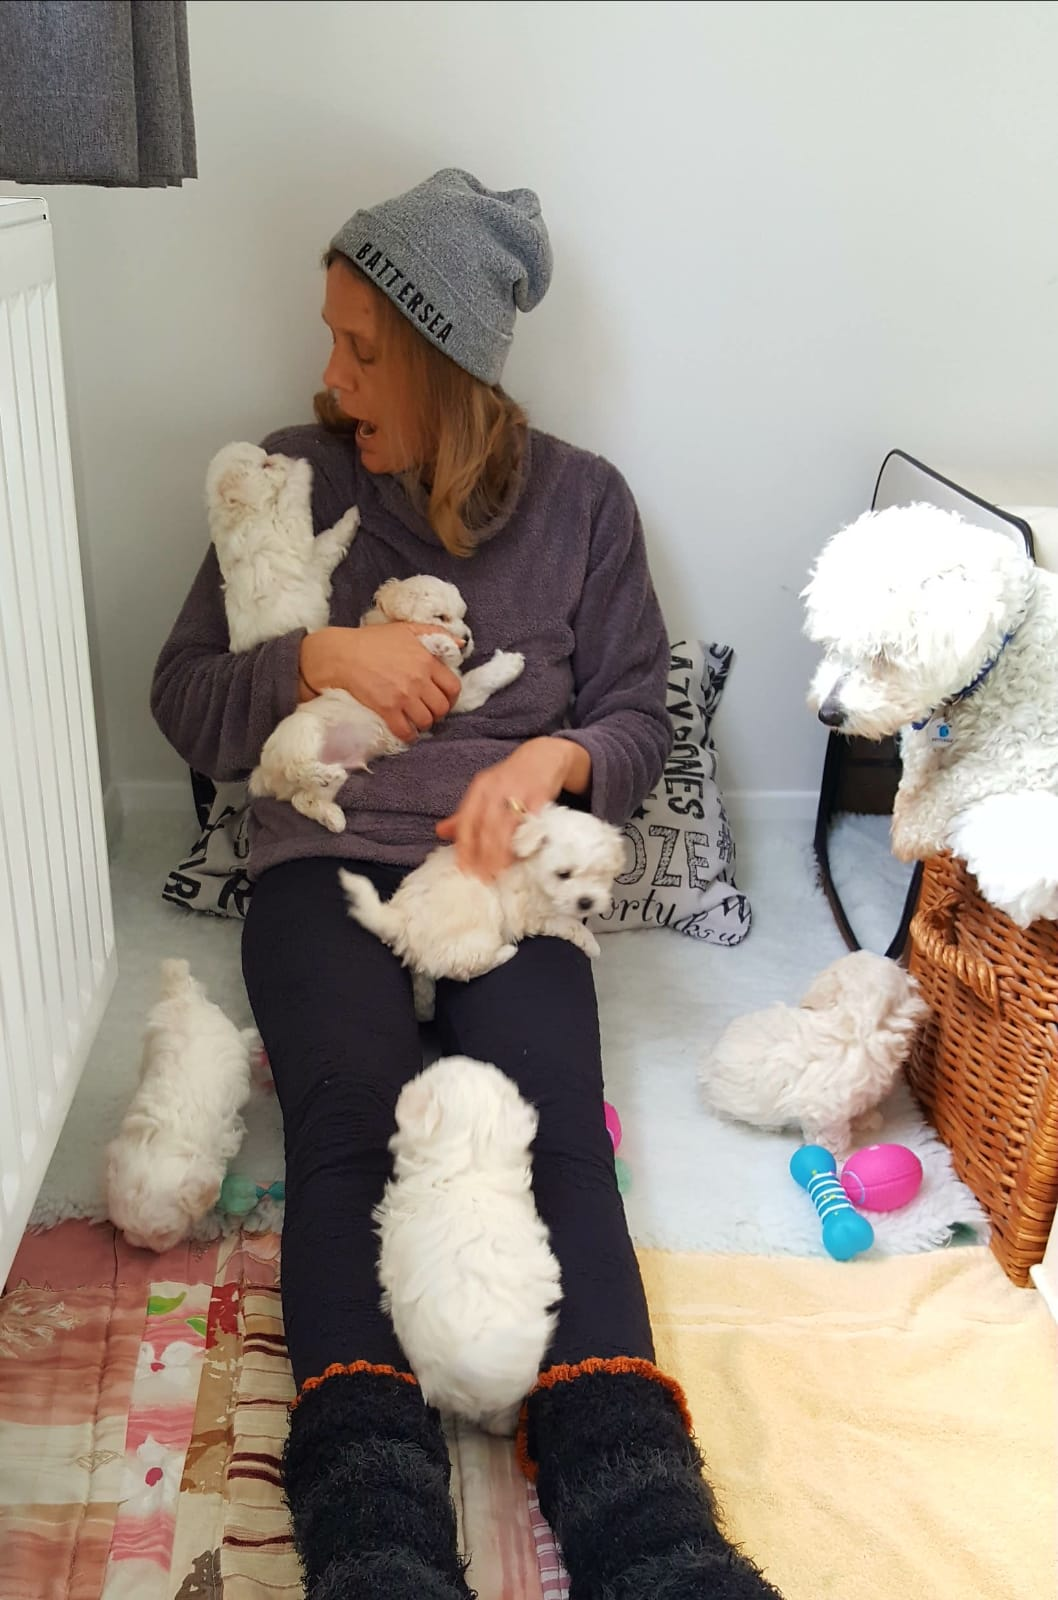 Jessie, Bichon Frise with her litter of puppies and their foster carer